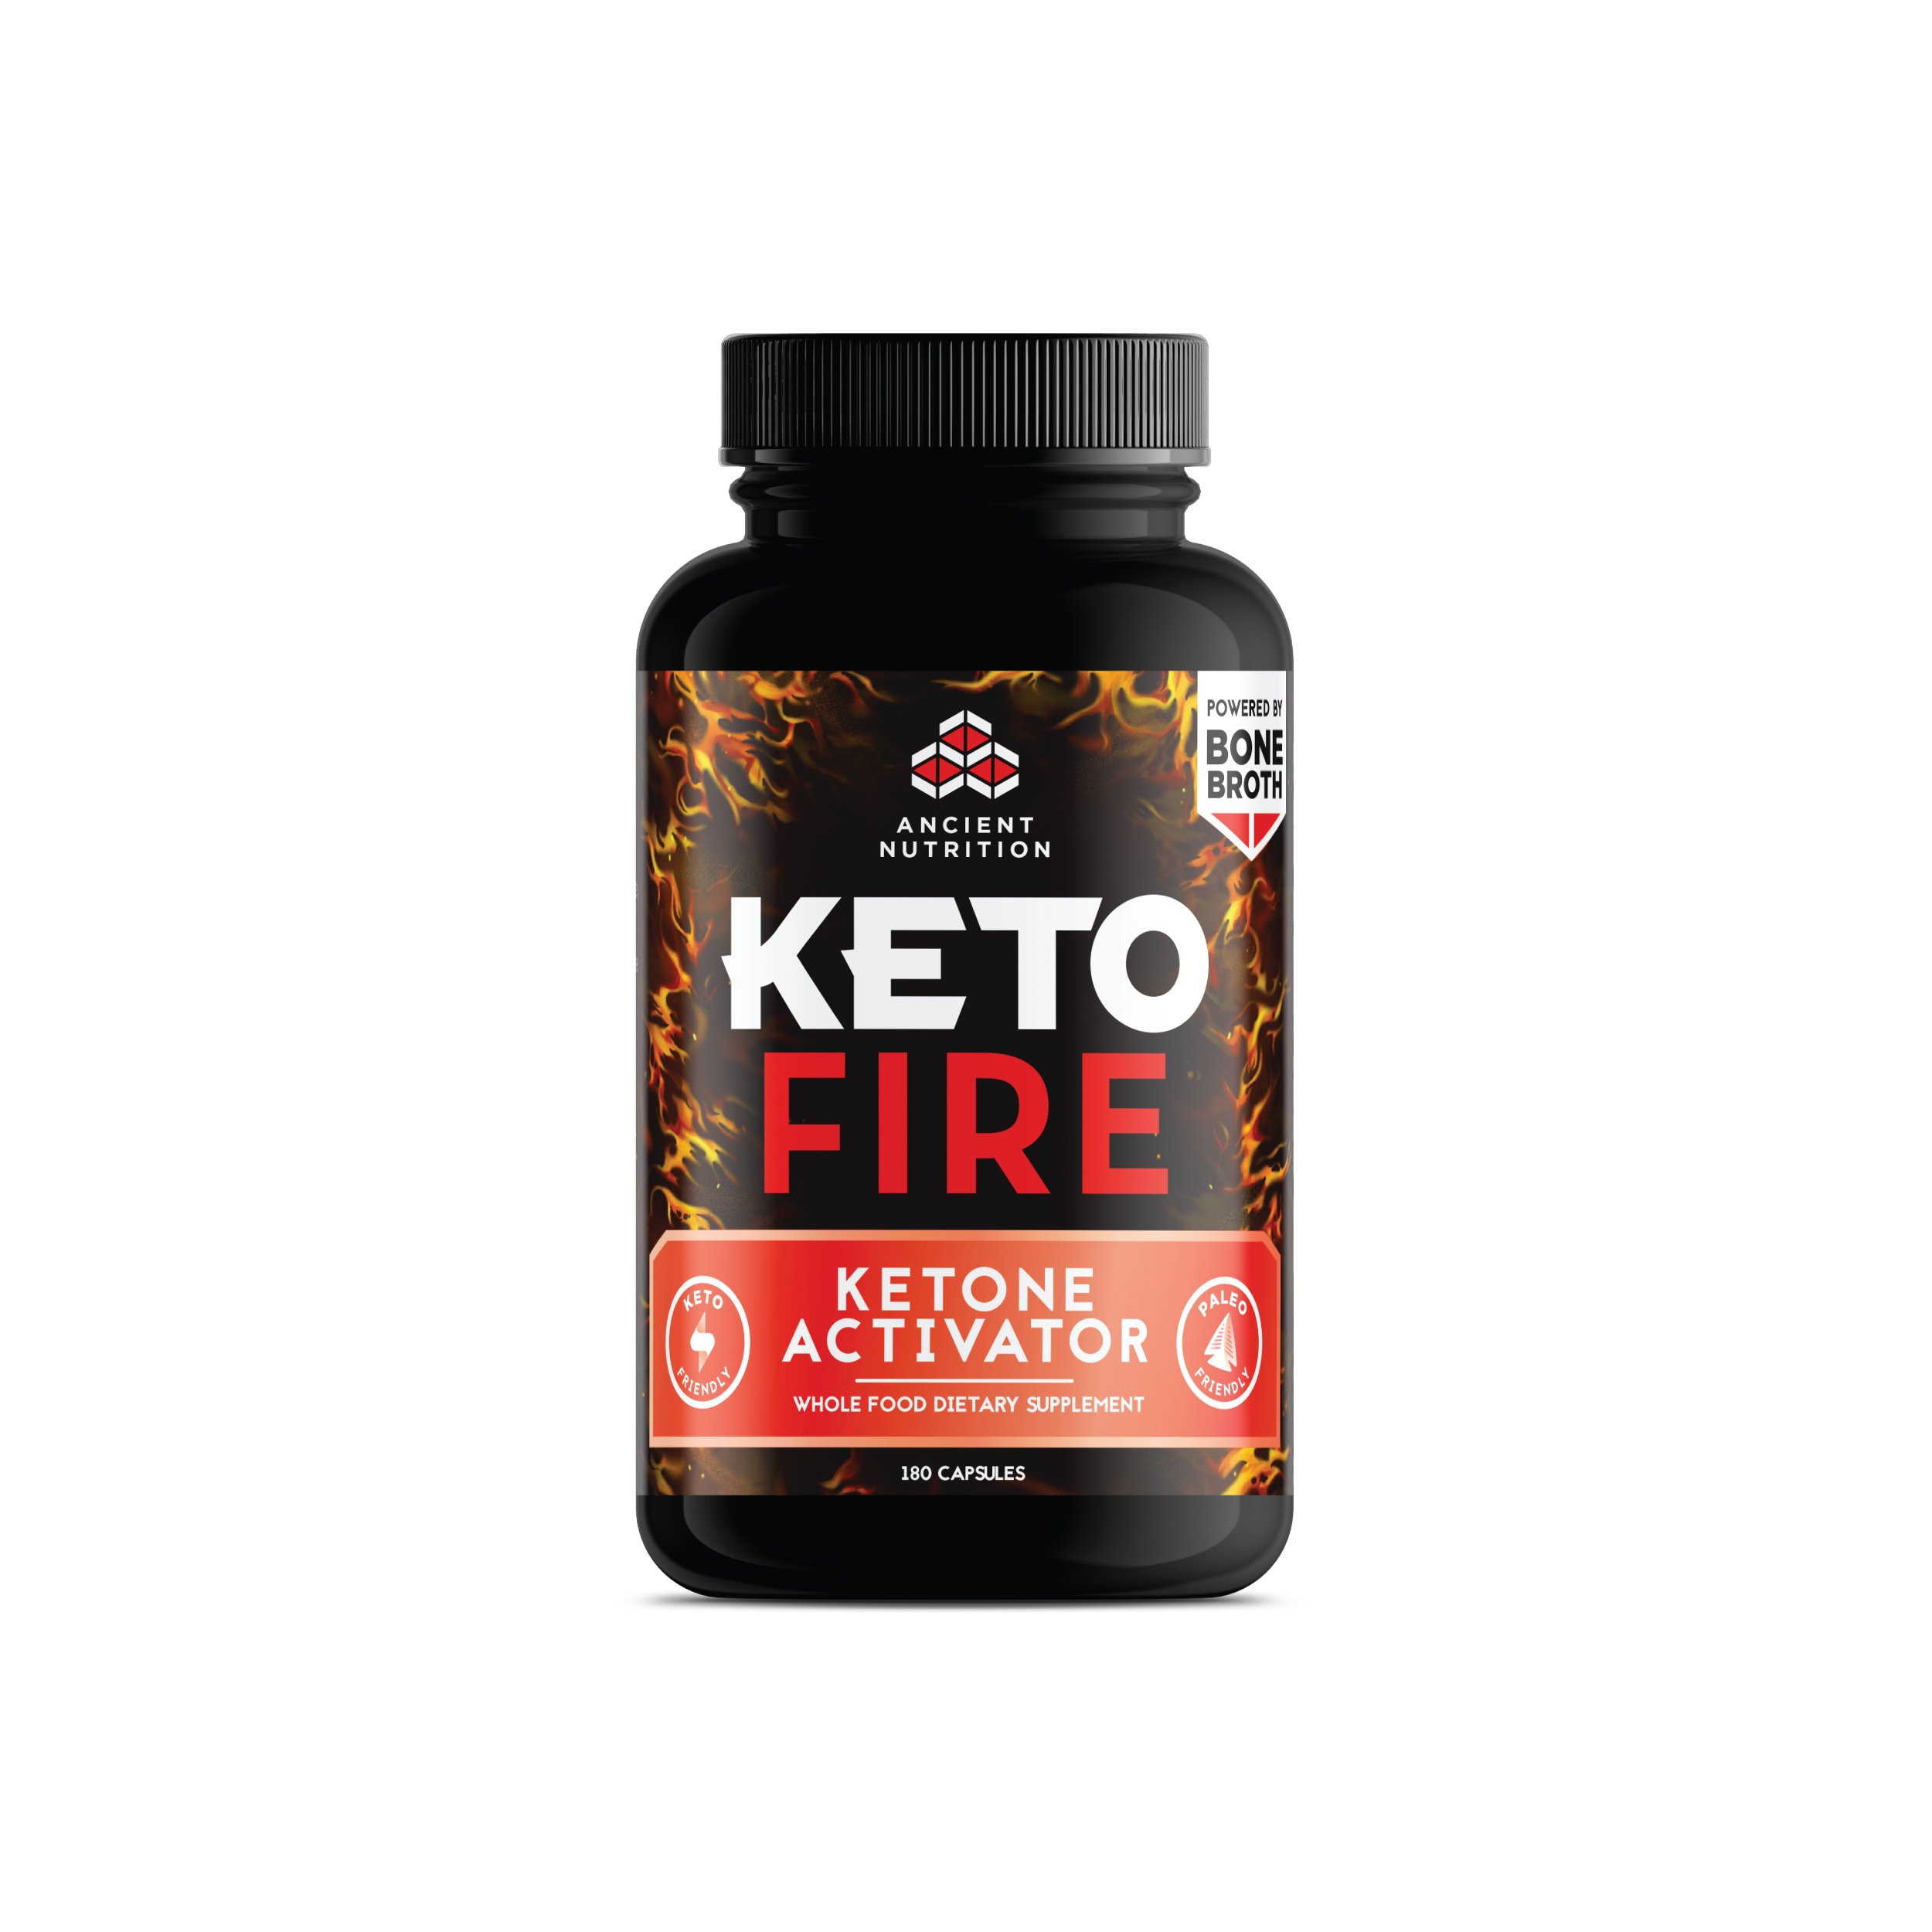 Ancient Nutrition KetoFIRE Capsules, Keto Supplement with BHB Salts as Exogenous Ketones, Electrolytes and Caffeine, Keto Diet, Ketosis Booster, 180 Count by Ancient Nutrition